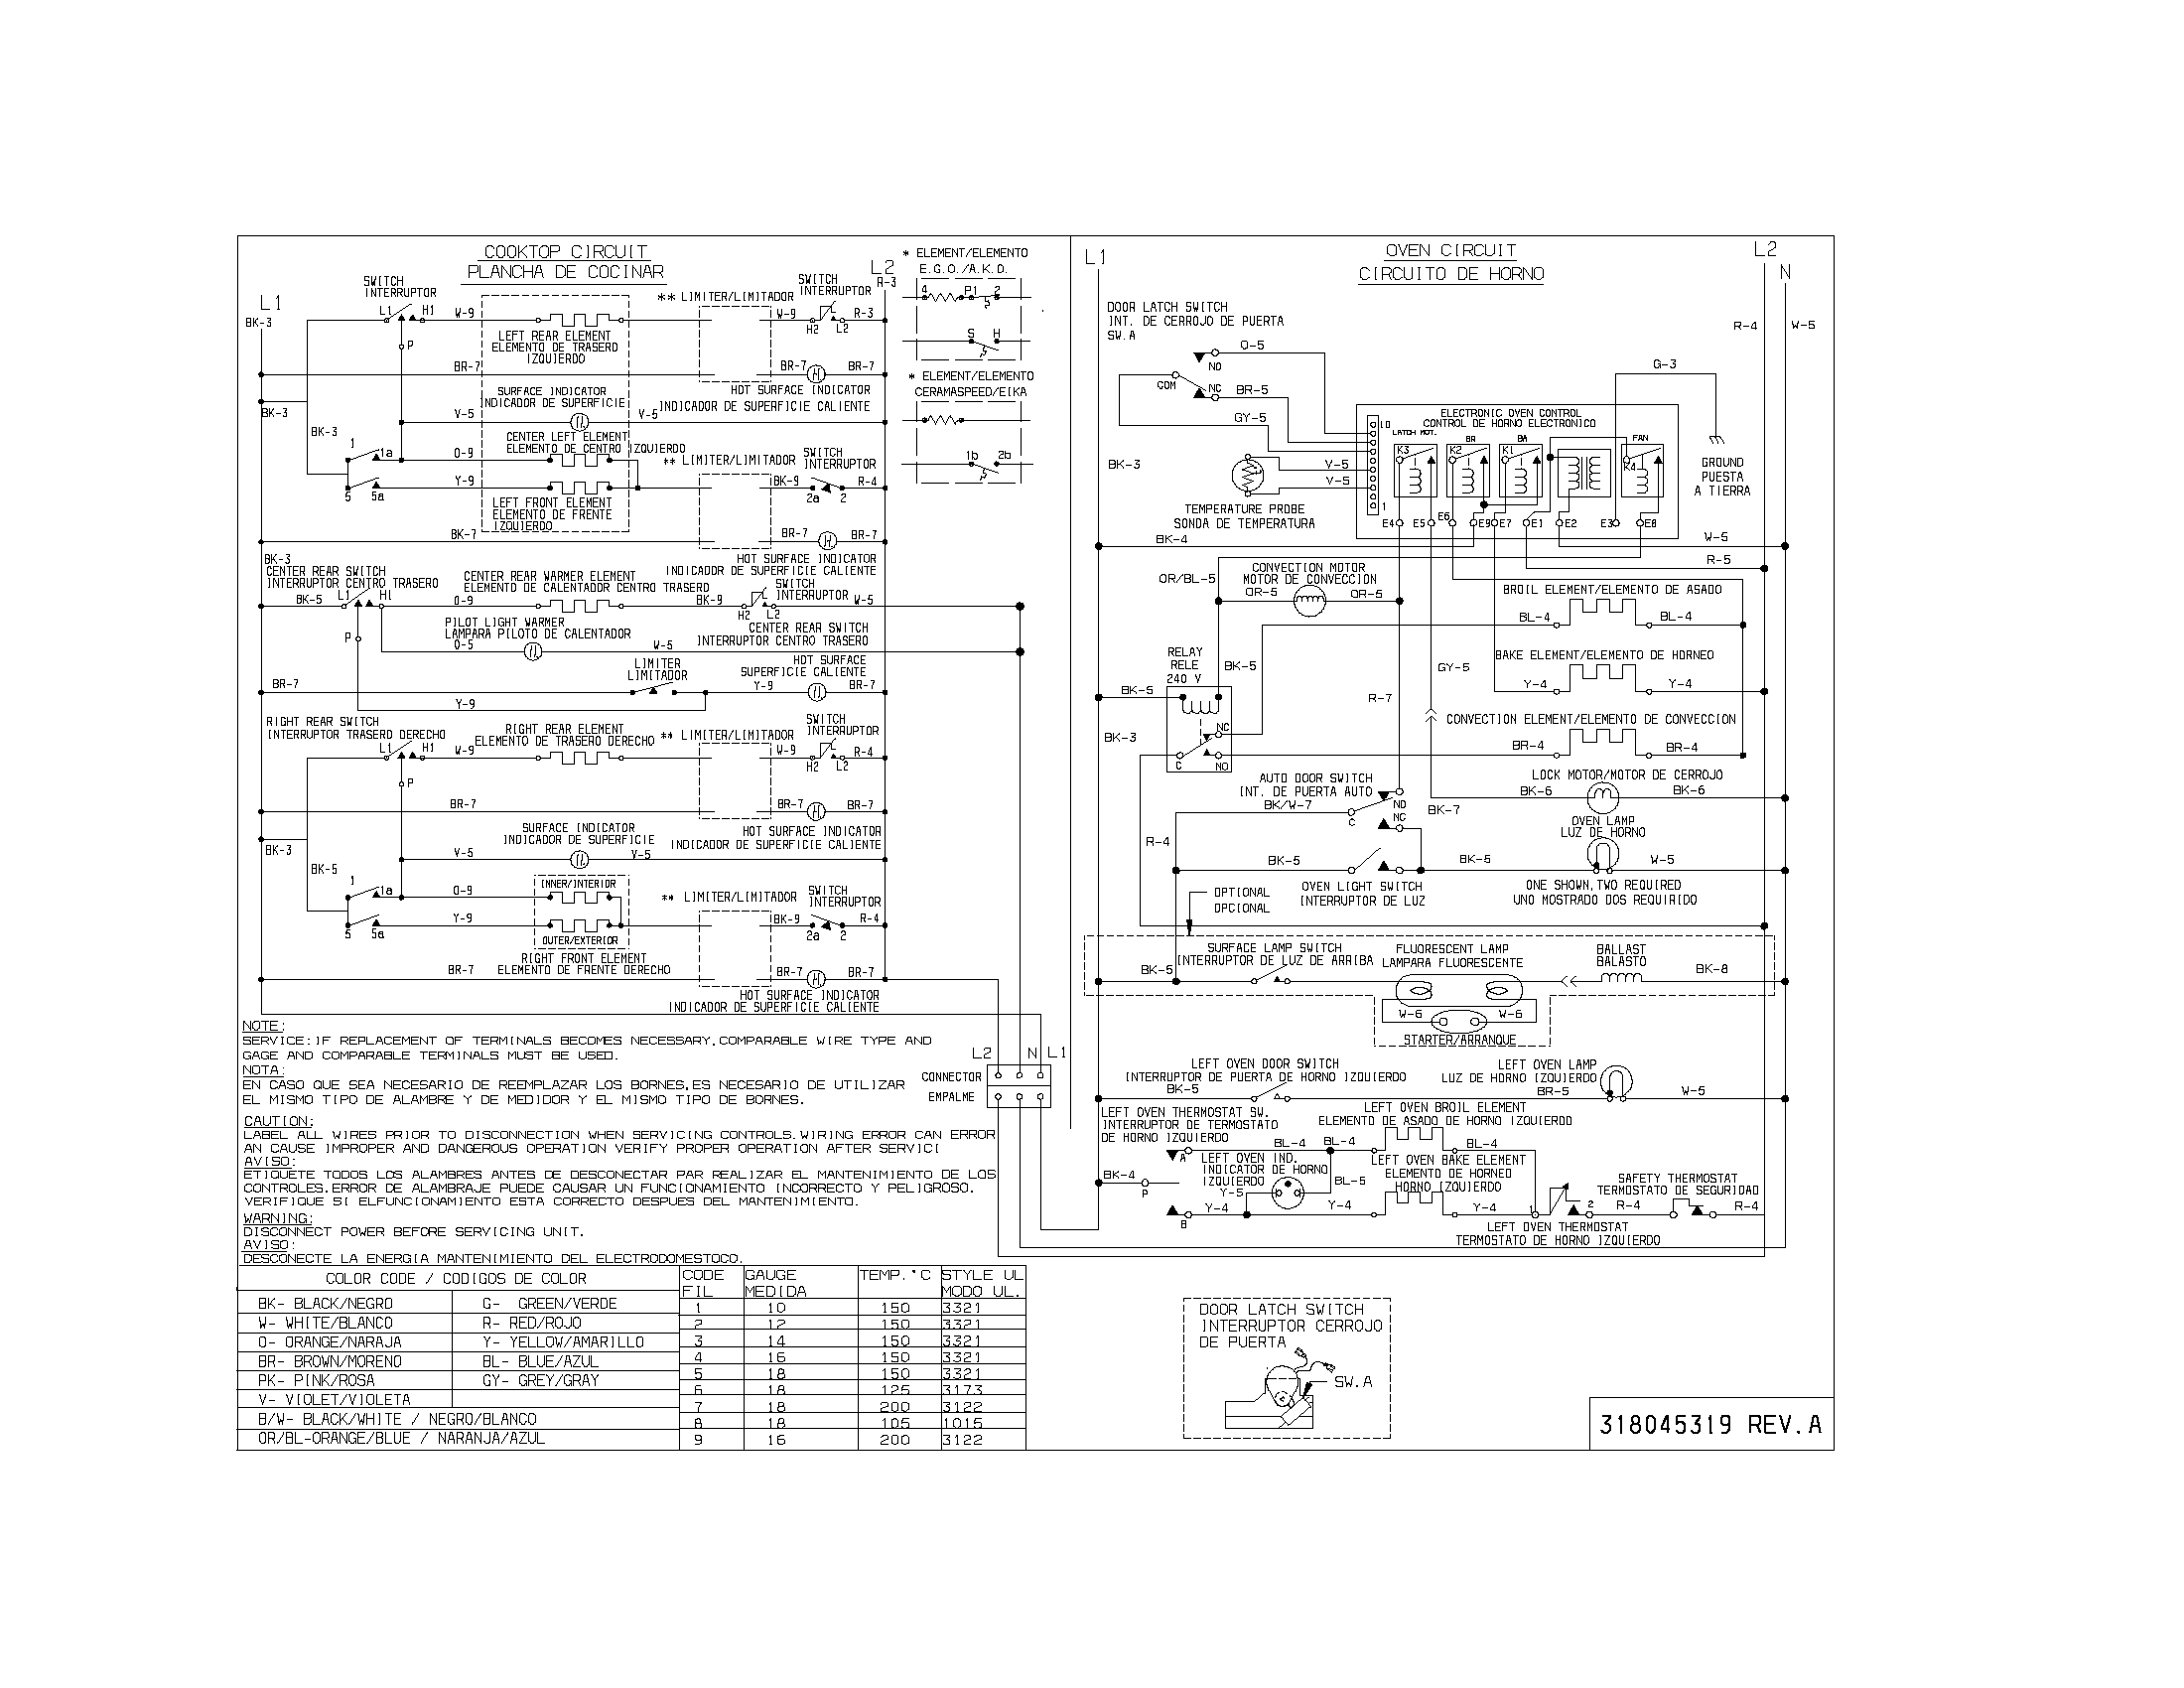 wiring diagram parts?resized665%2C5146ssld1 kic fridge thermostat wiring diagram efcaviation com kic fridge thermostat wiring diagram at gsmx.co